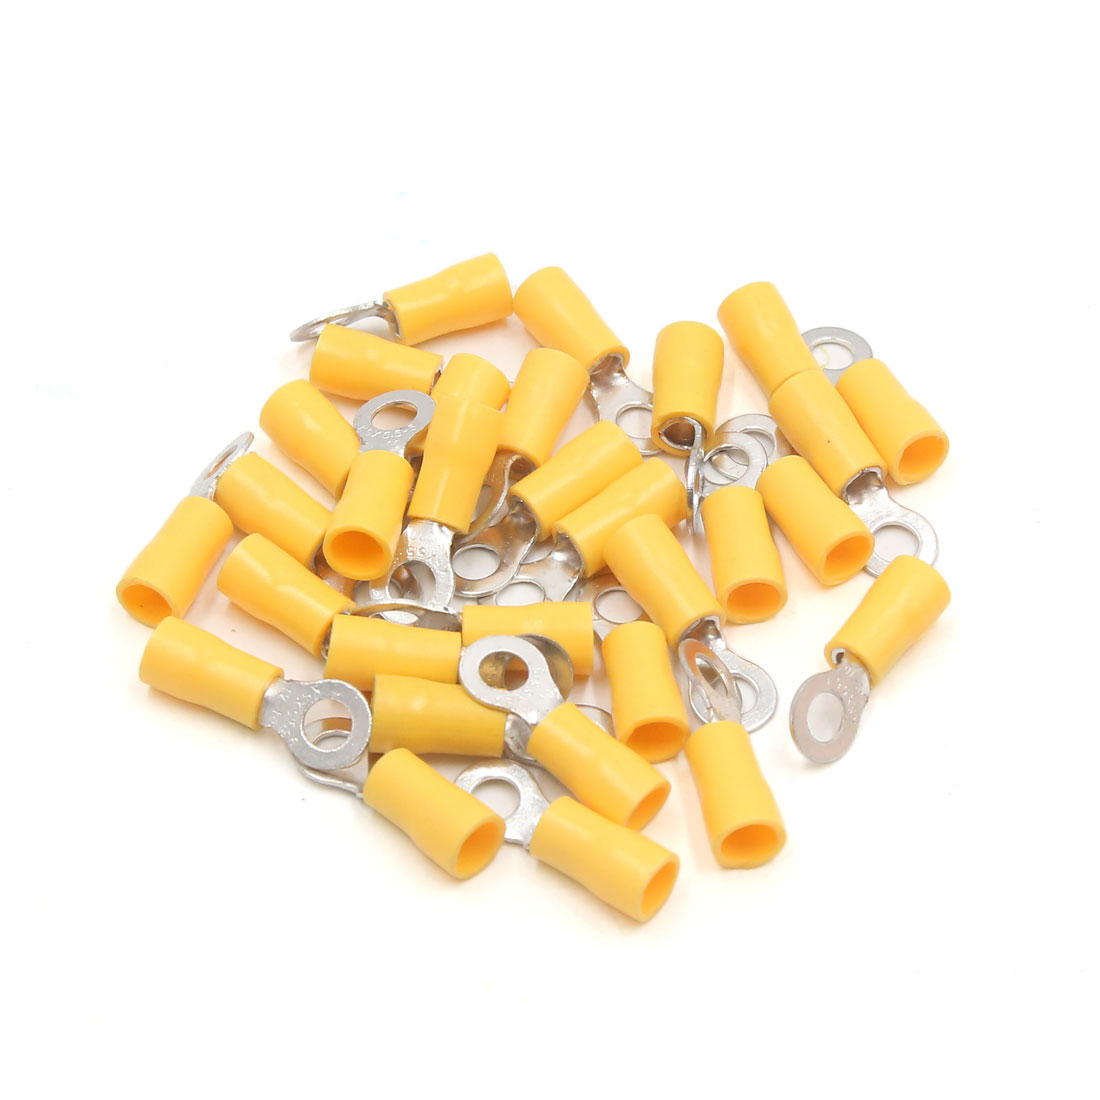 30Pcs 5mm Ring Hole Insulated Spade Wire Crimp Terminal Connector for Car Yellow